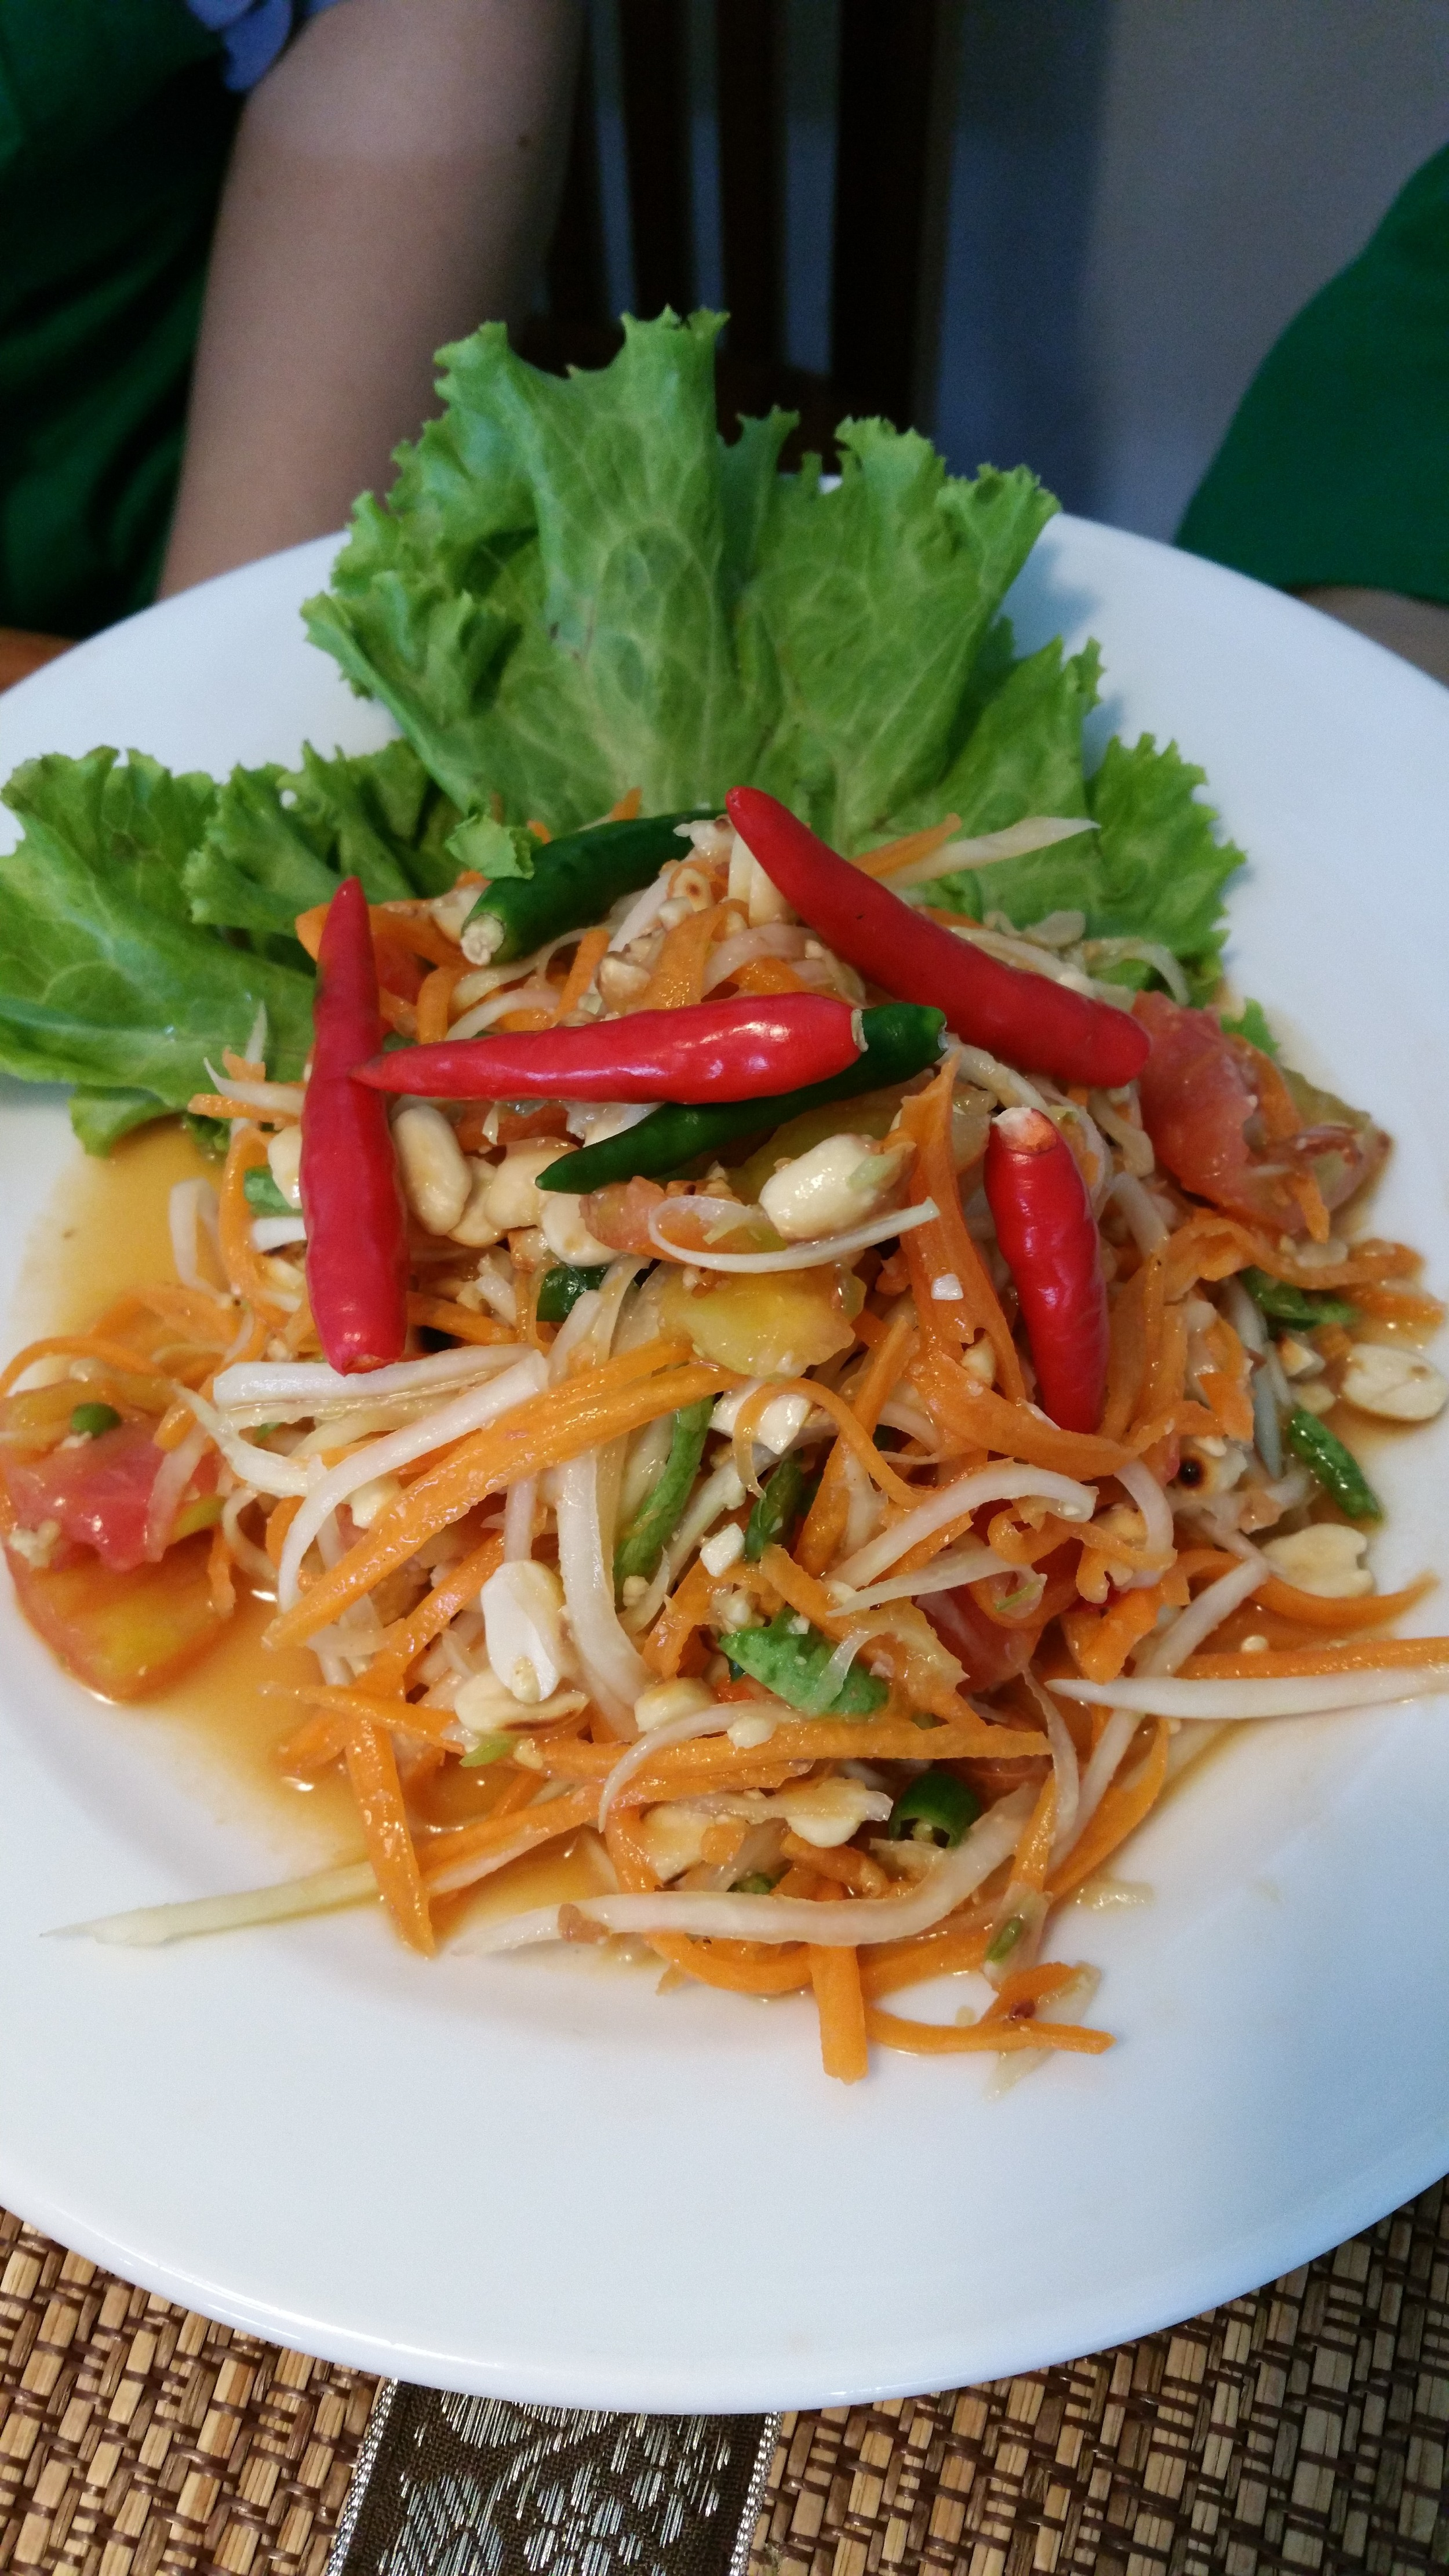 Papaya salad up close!